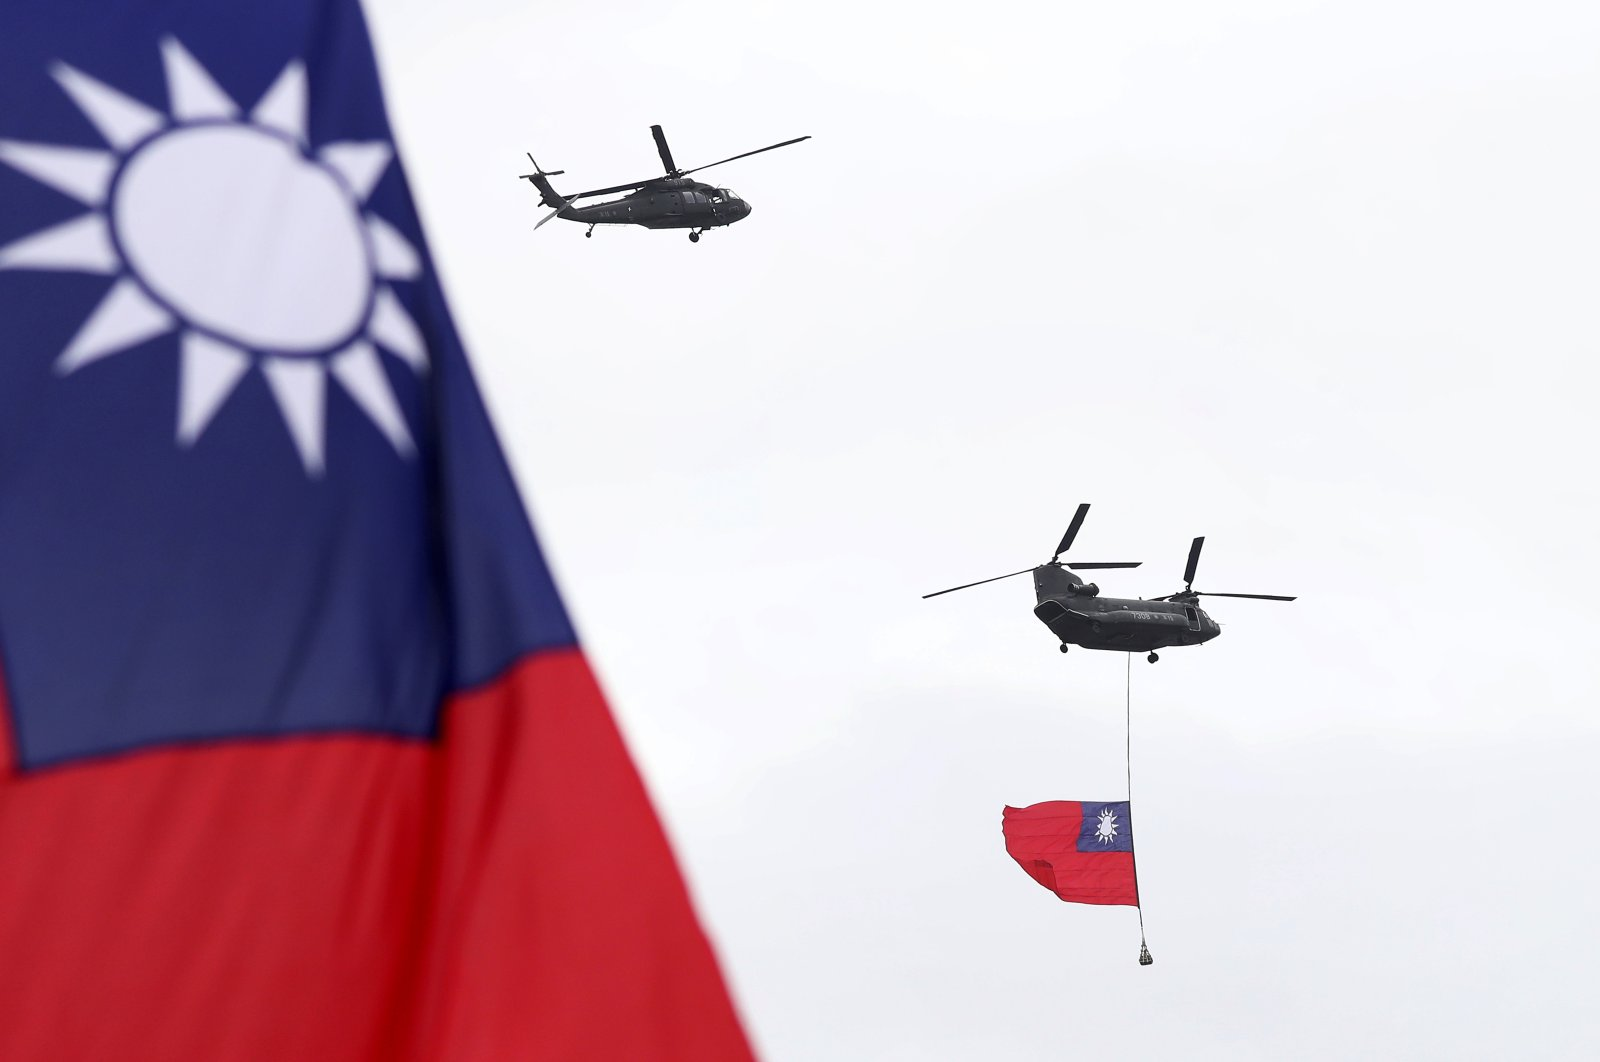 Helicopters fly over the President's Office with a Taiwan national flag during the National Day celebrations in Taipei, Taiwan, Oct. 10, 2020. (AP Photo)